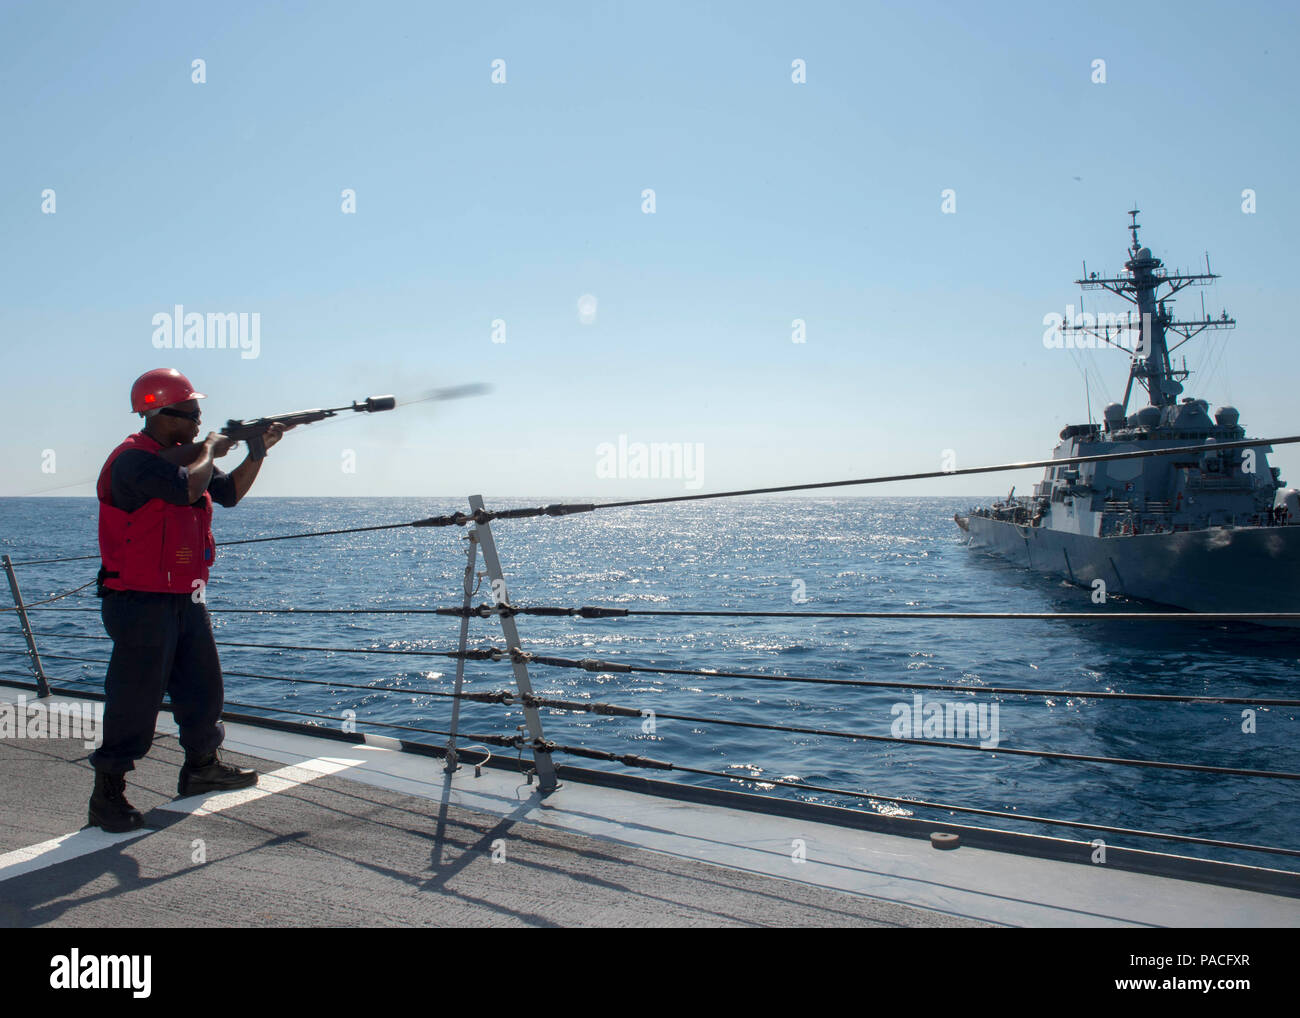 160316-N-DQ503-047 ATLANTIC OCEAN (March 16, 2016) – Gunner's Mate 3rd Class Allen Marshall, from Lawton, Okla., fires a shotline from the forecastle of the guided-missile destroyer USS Roosevelt (DDG 80) to the guided-missile destroyer USS Stout (DDG 55) during a towing exercise. Roosevelt and Stout are underway conducting Composite Training Unit Exercise (COMPTUEX) with the Dwight D. Eisenhower Carrier Strike Group in preparation for a future deployment. (U.S. Navy Photo by Mass Communication Specialist 3rd Class Taylor A. Elberg/Released) - Stock Image